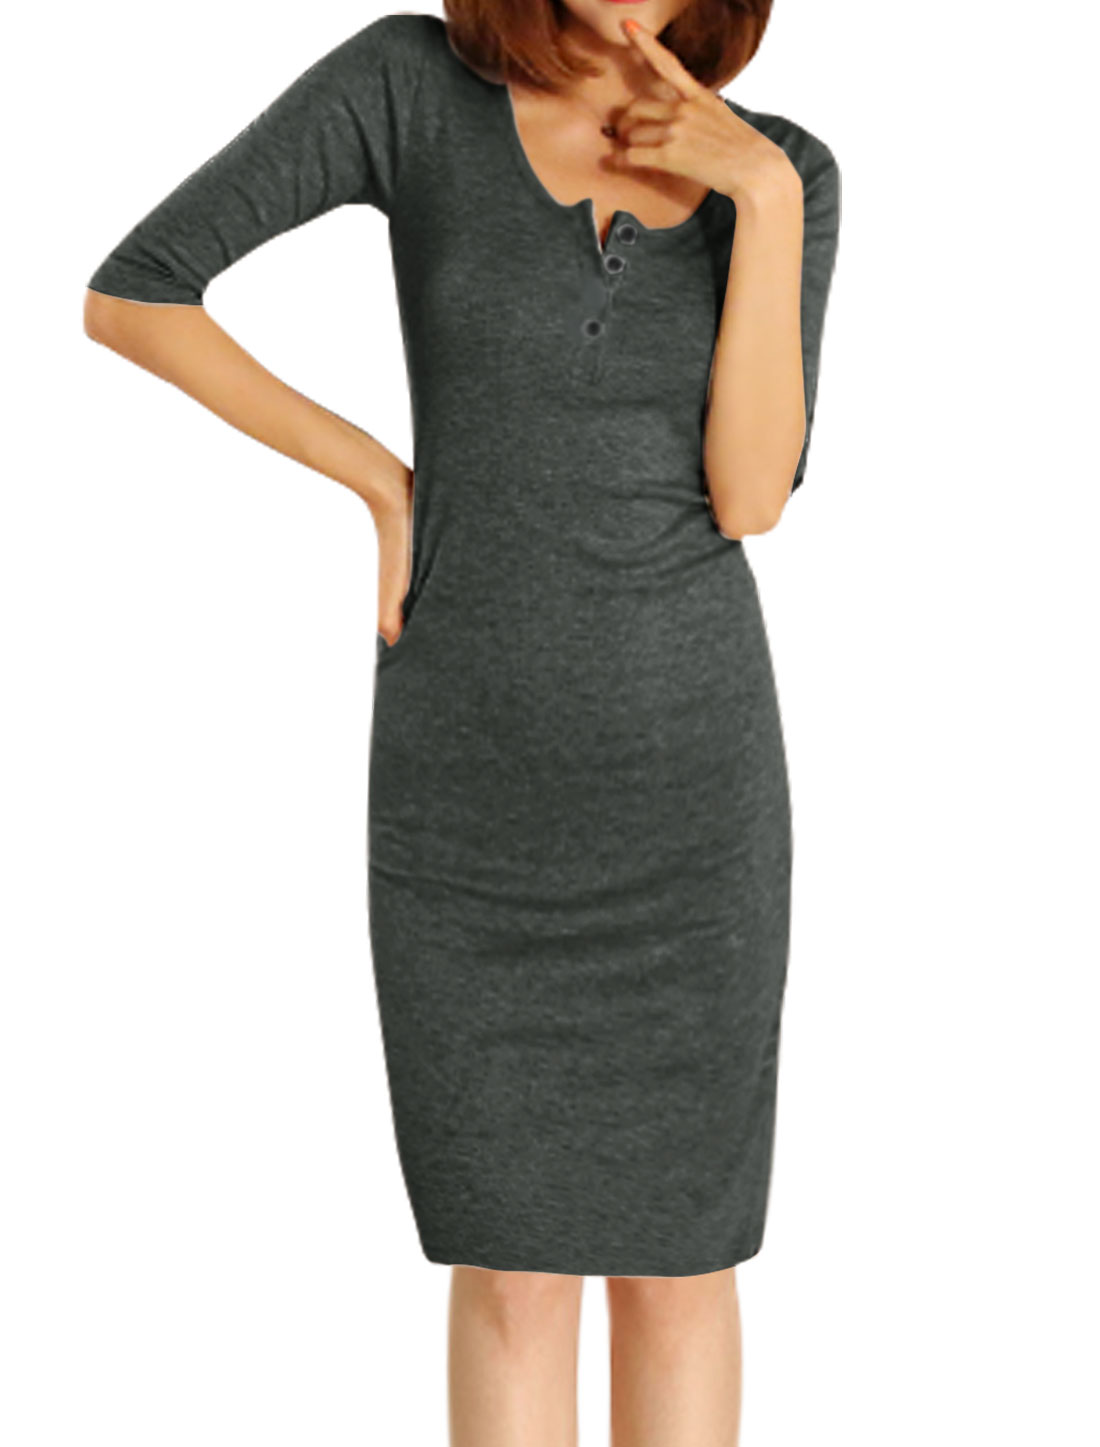 Women Half Button Closure 1/2 Sleeves Sheath Dress Dark Gray S